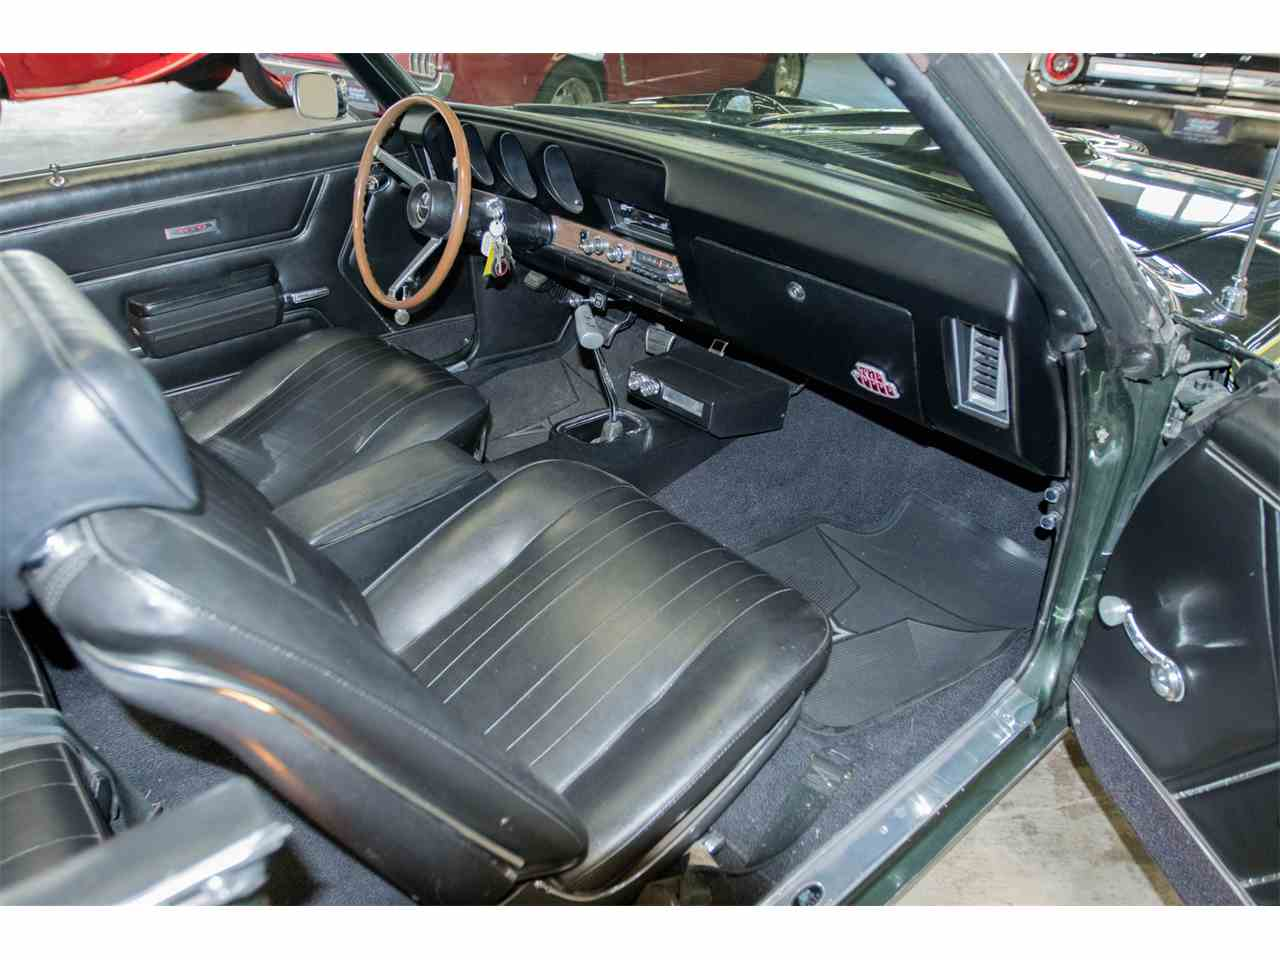 Large Picture of '69 Pontiac GTO located in Fairfield California - $99,990.00 - JVOR